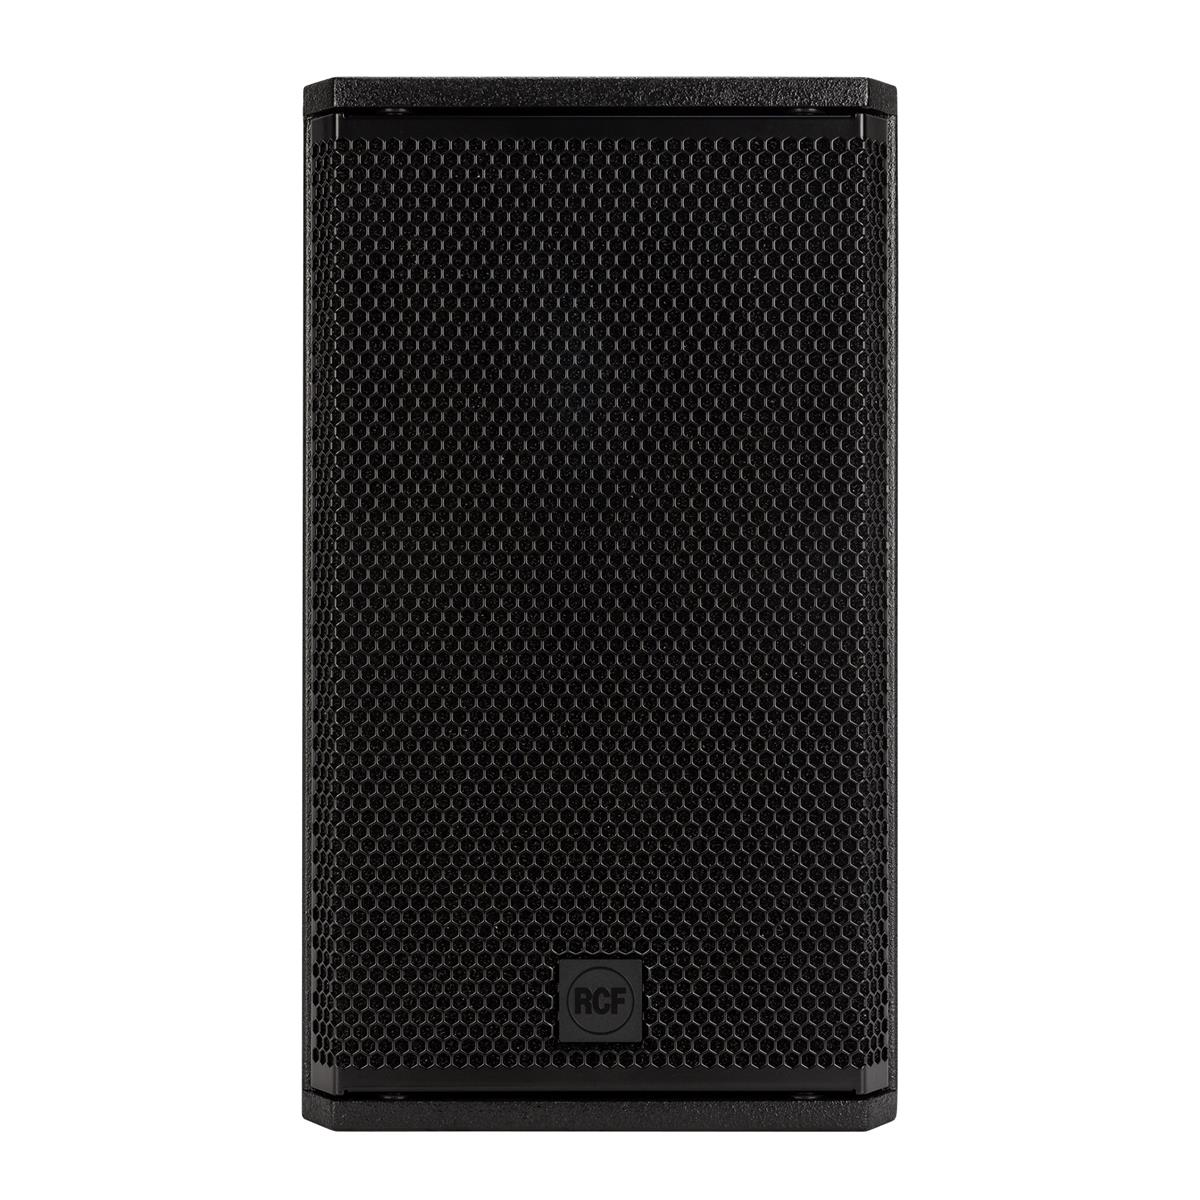 RCF Two-way passive speaker system 10in+ 1in, 300W